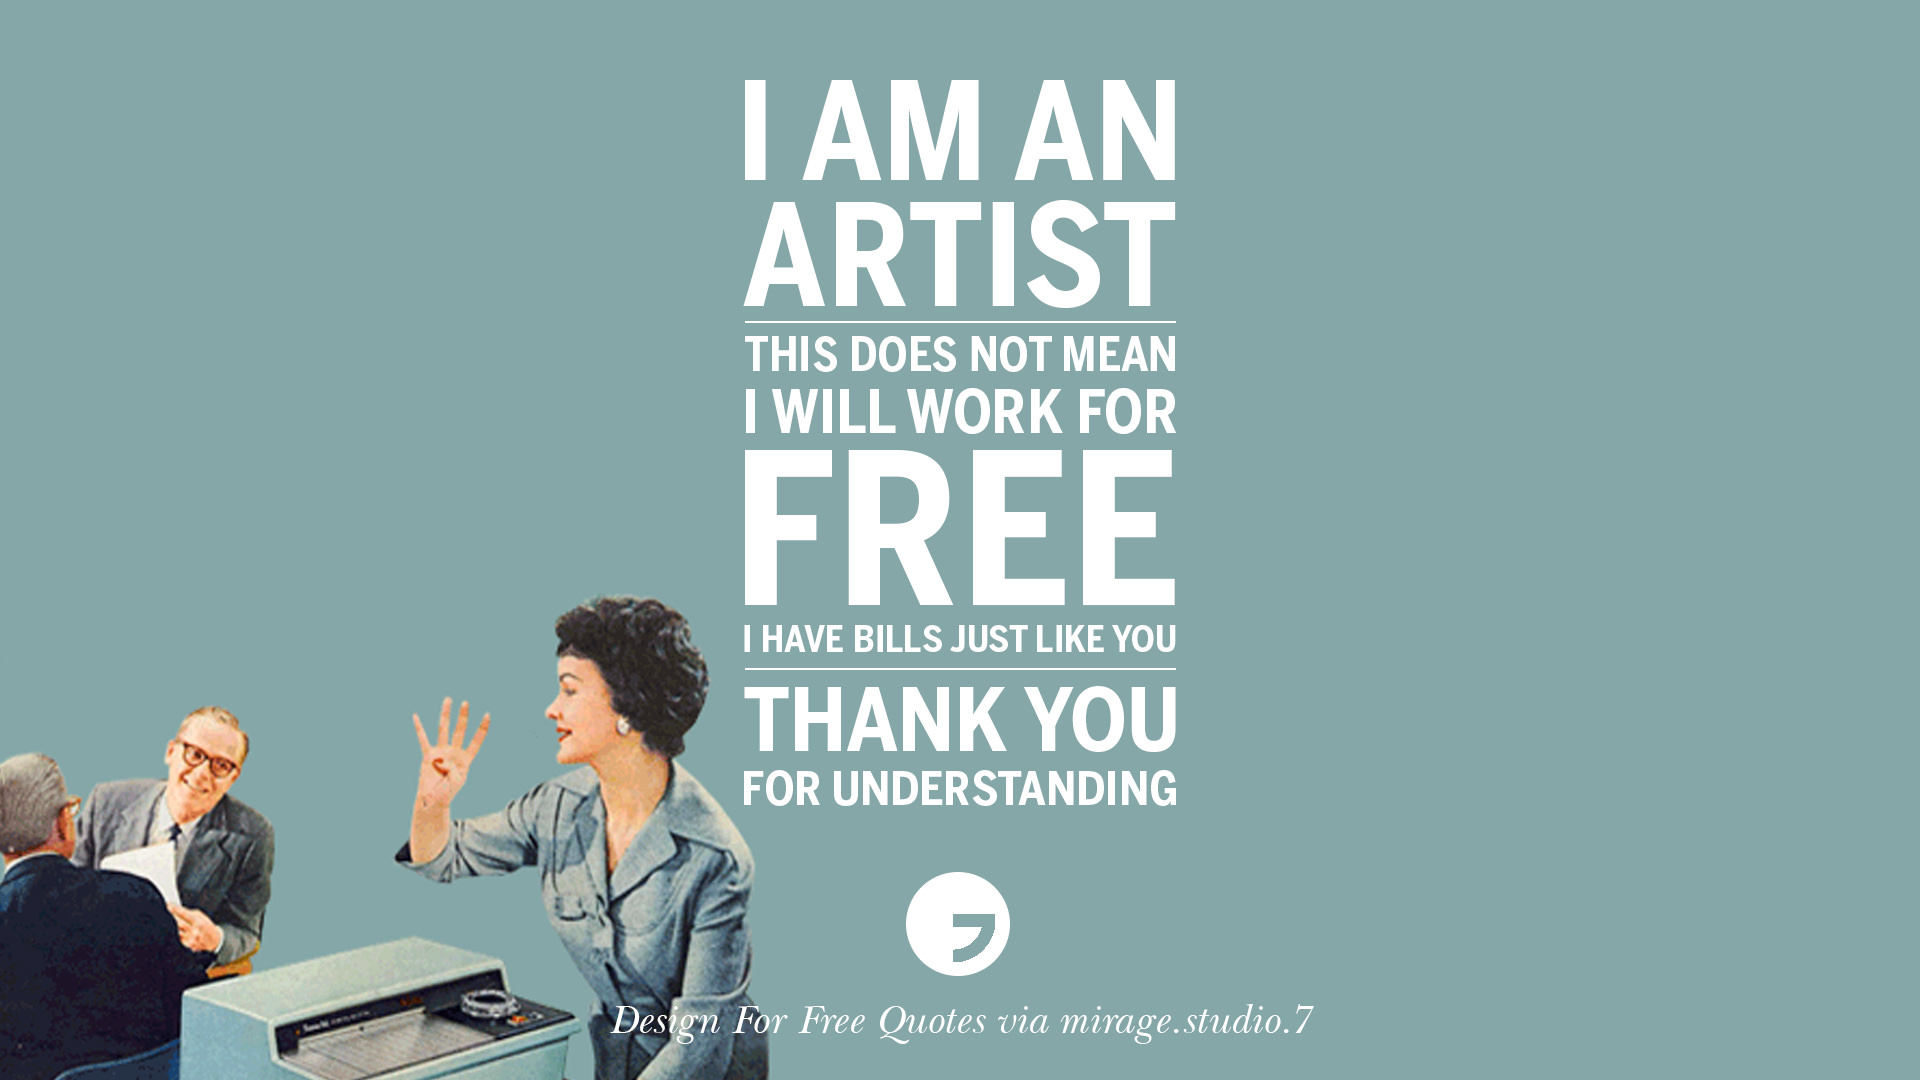 Home Design Quotes Part - 19: I Am An Artist. This Does Not Mean I Will Work For Free. I Have Bills Just  Like You. Thank You For Understanding.